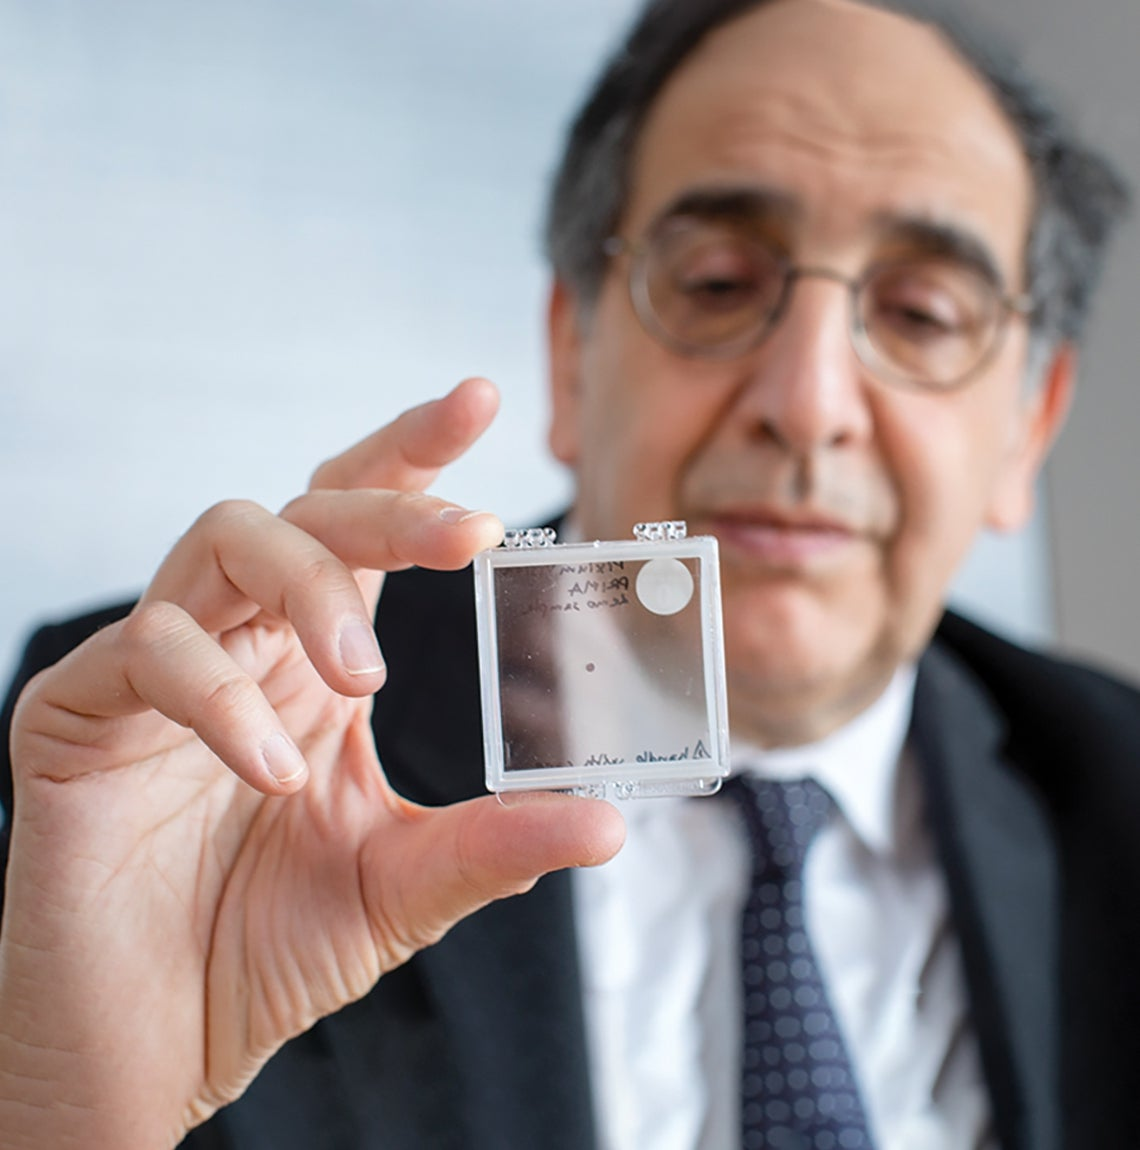 main in dark suit holds glass slide in focus for camera